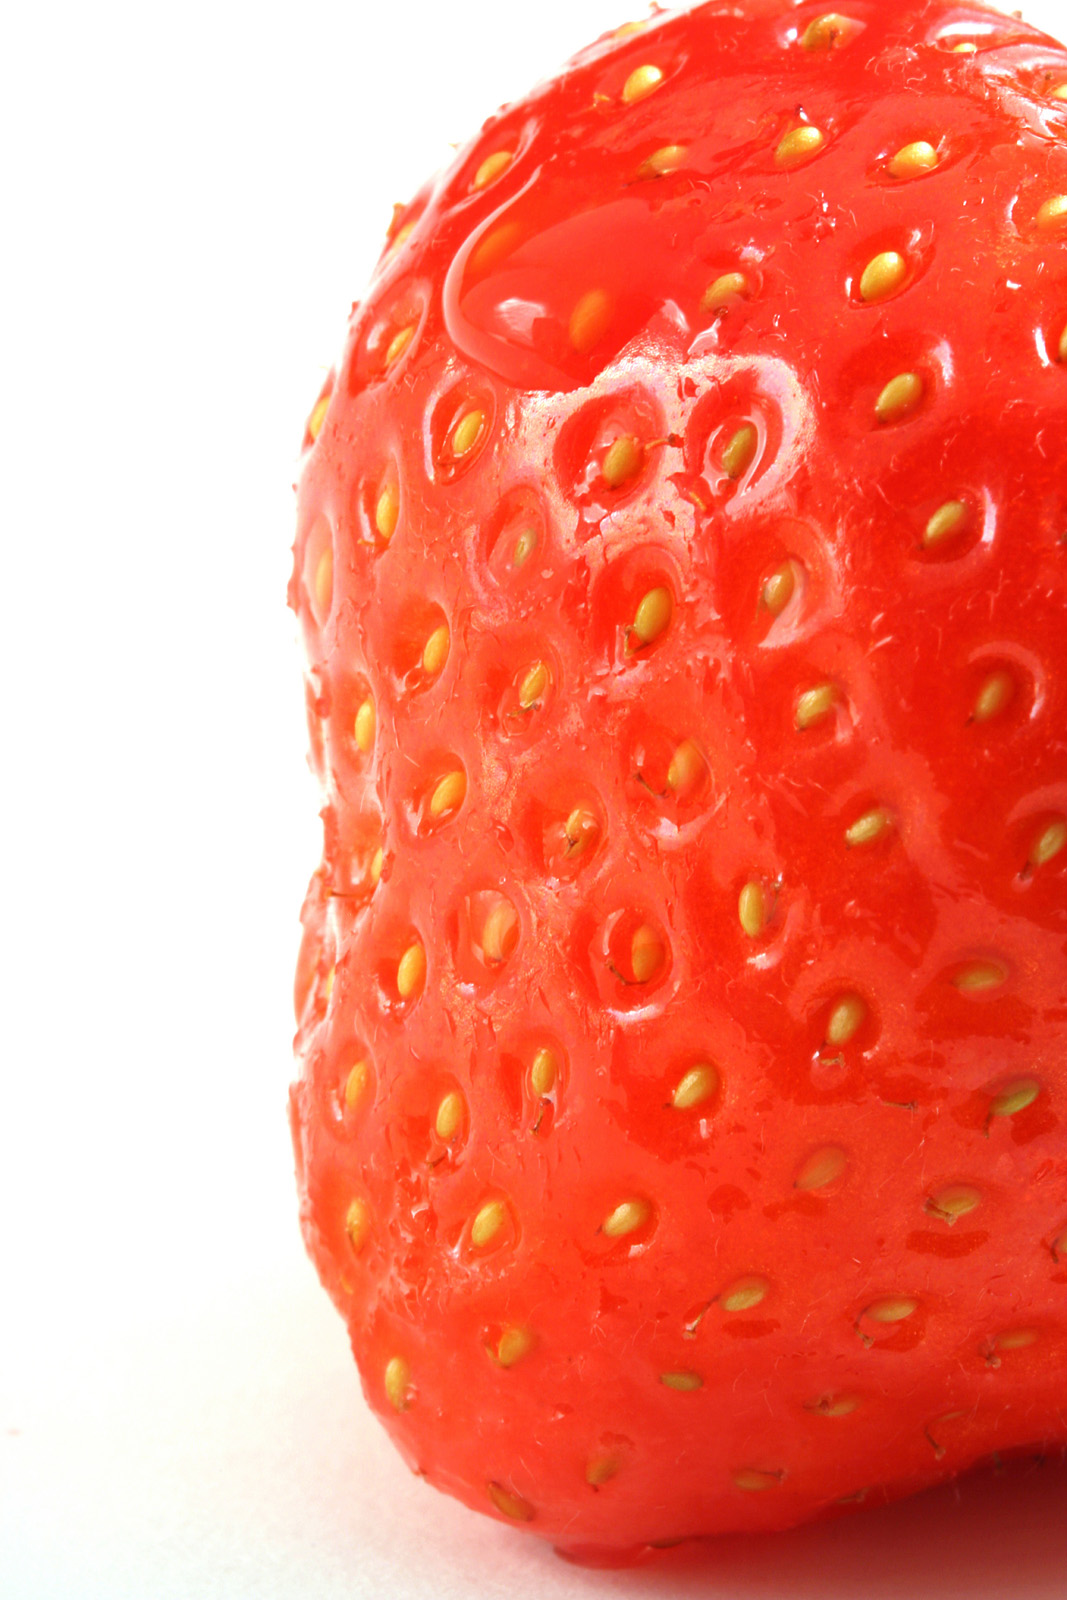 Strawberry close-up high-definition 6740